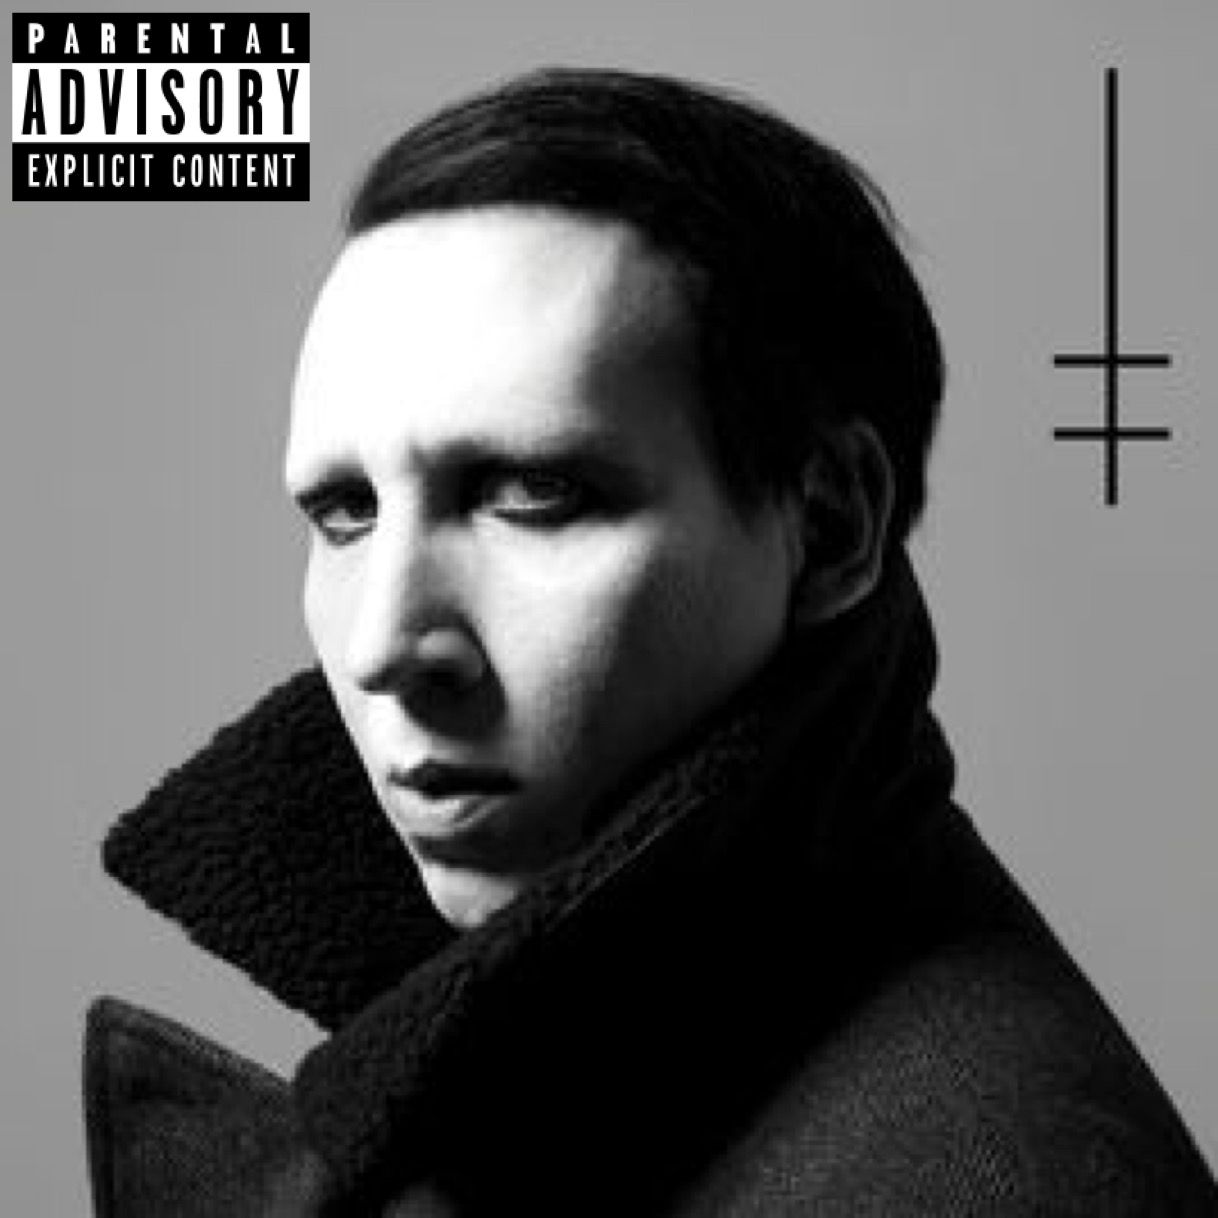 Pin On I Marilyn ͺmanson 143 I Doooo He Whom Means The Everything In My World